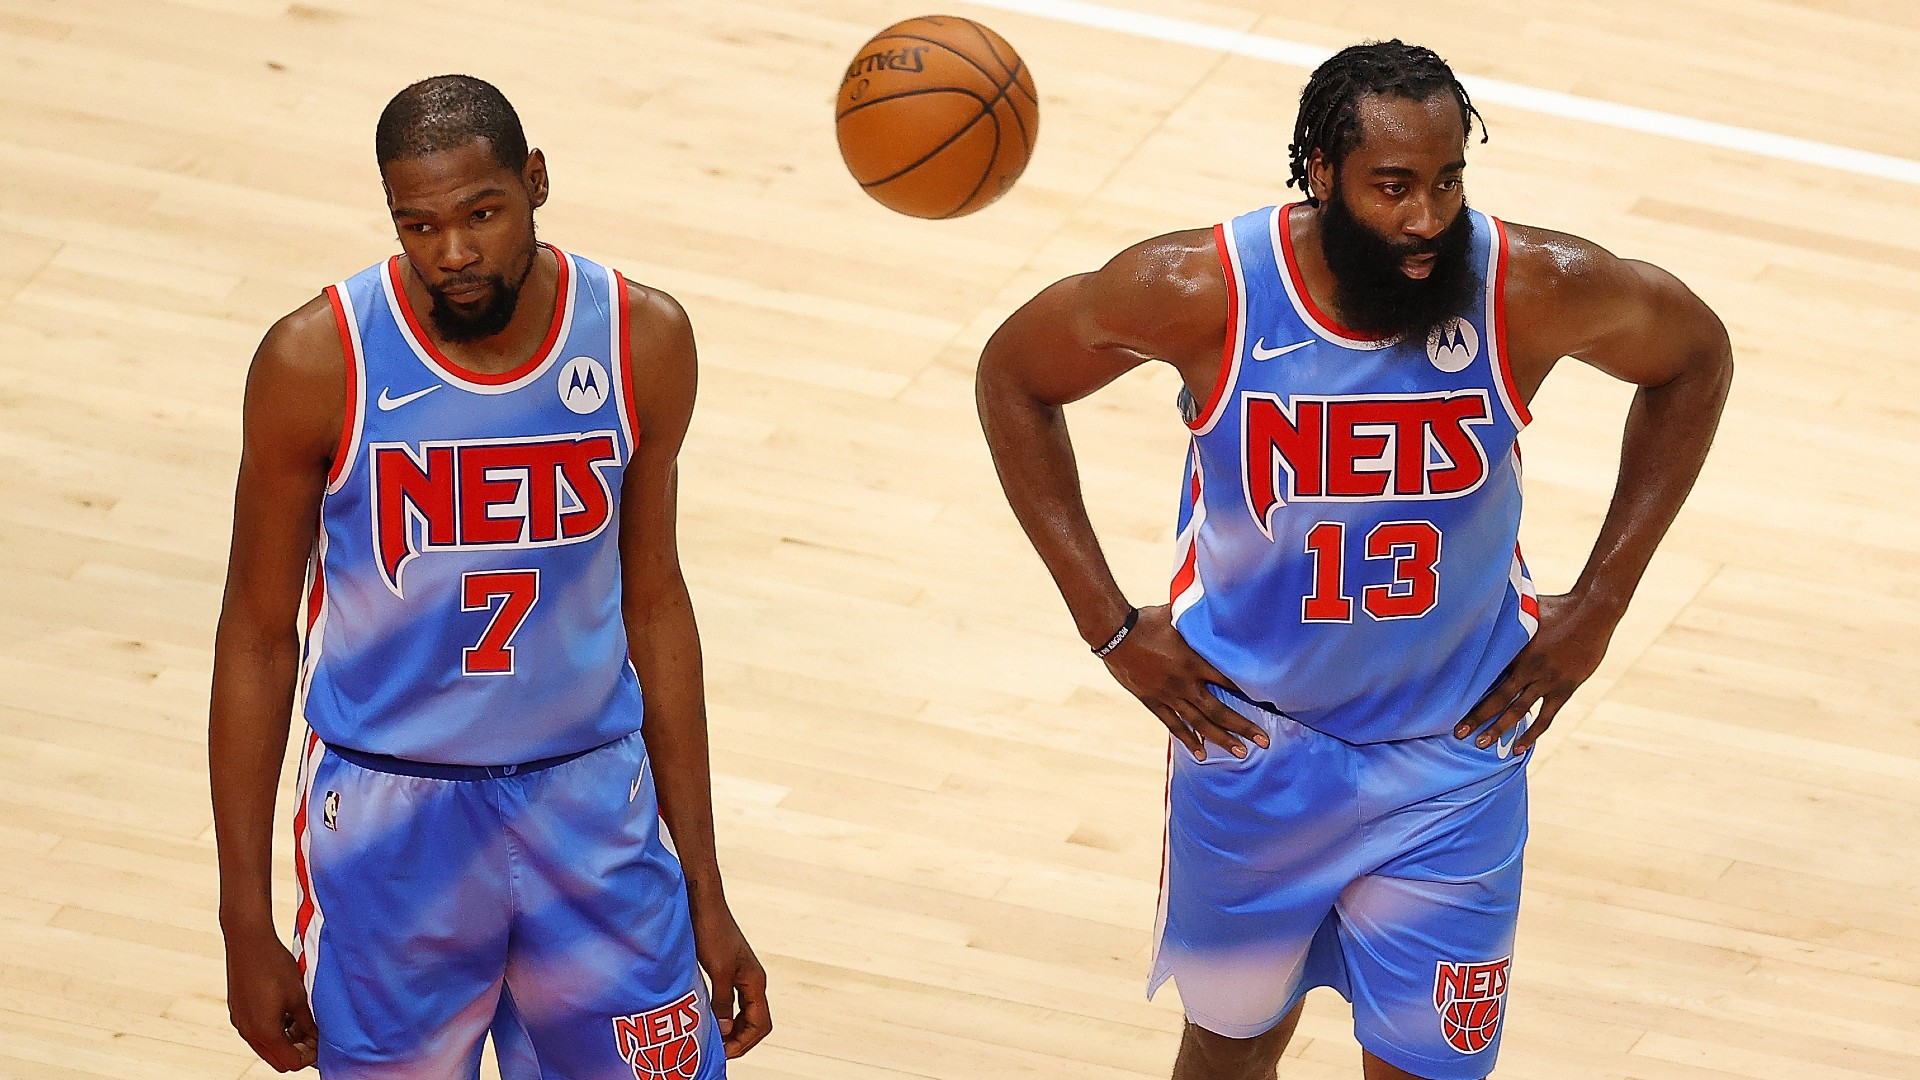 Why are they playing Kevin Durant in the James Harden Nets vs. Hornets game?